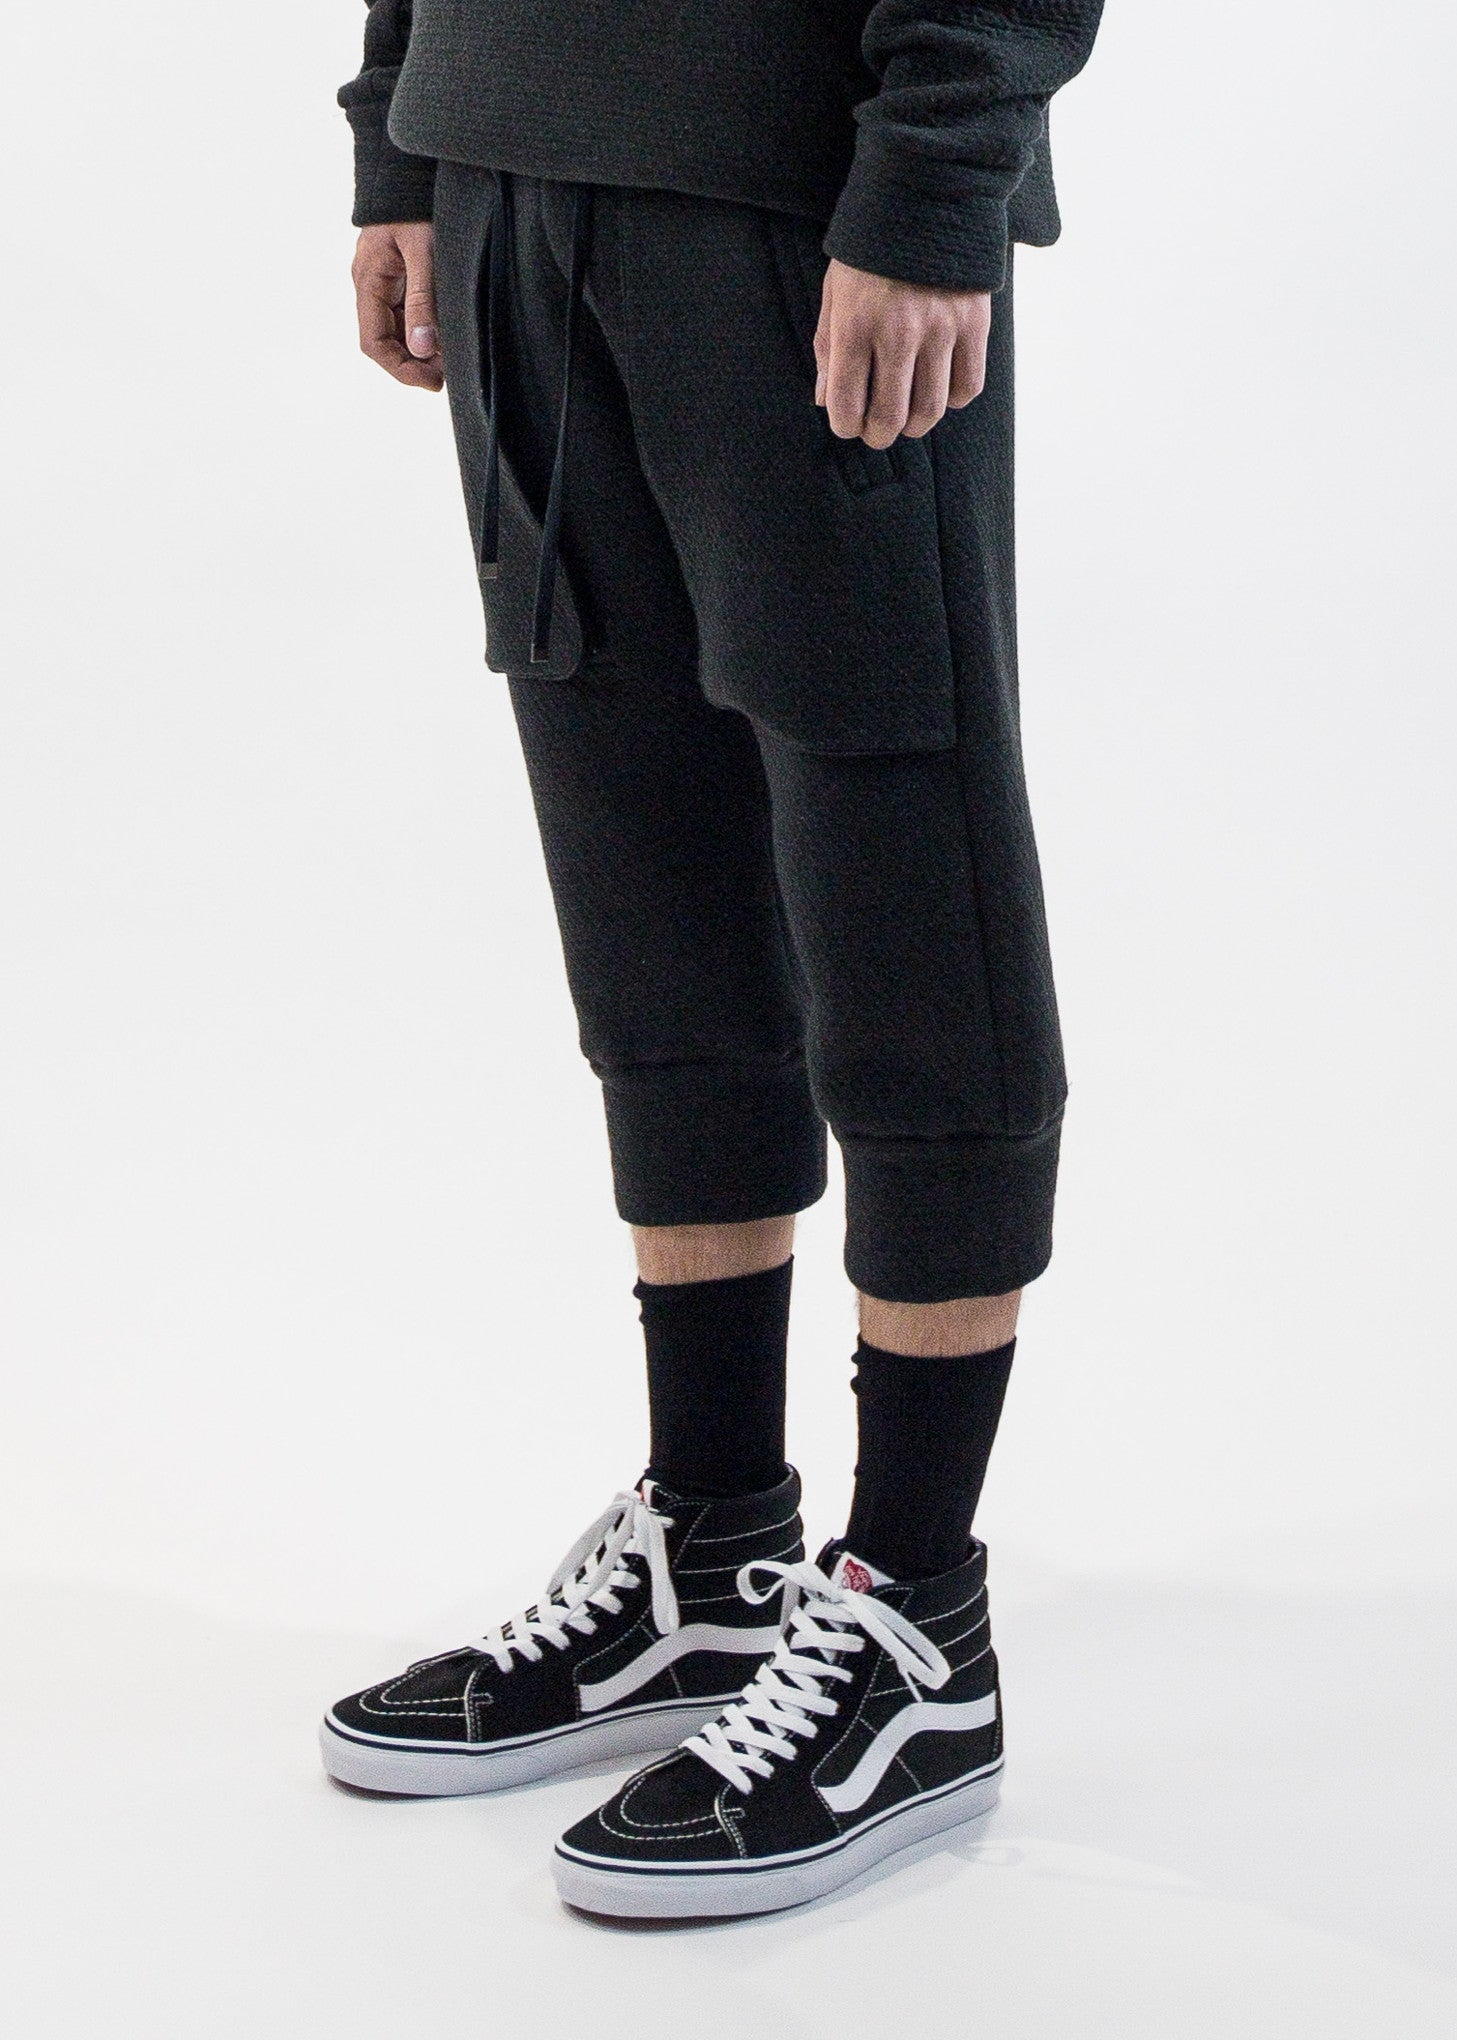 Helmut Lang Men's Cropped Sweatpant Infiltrated Jersey